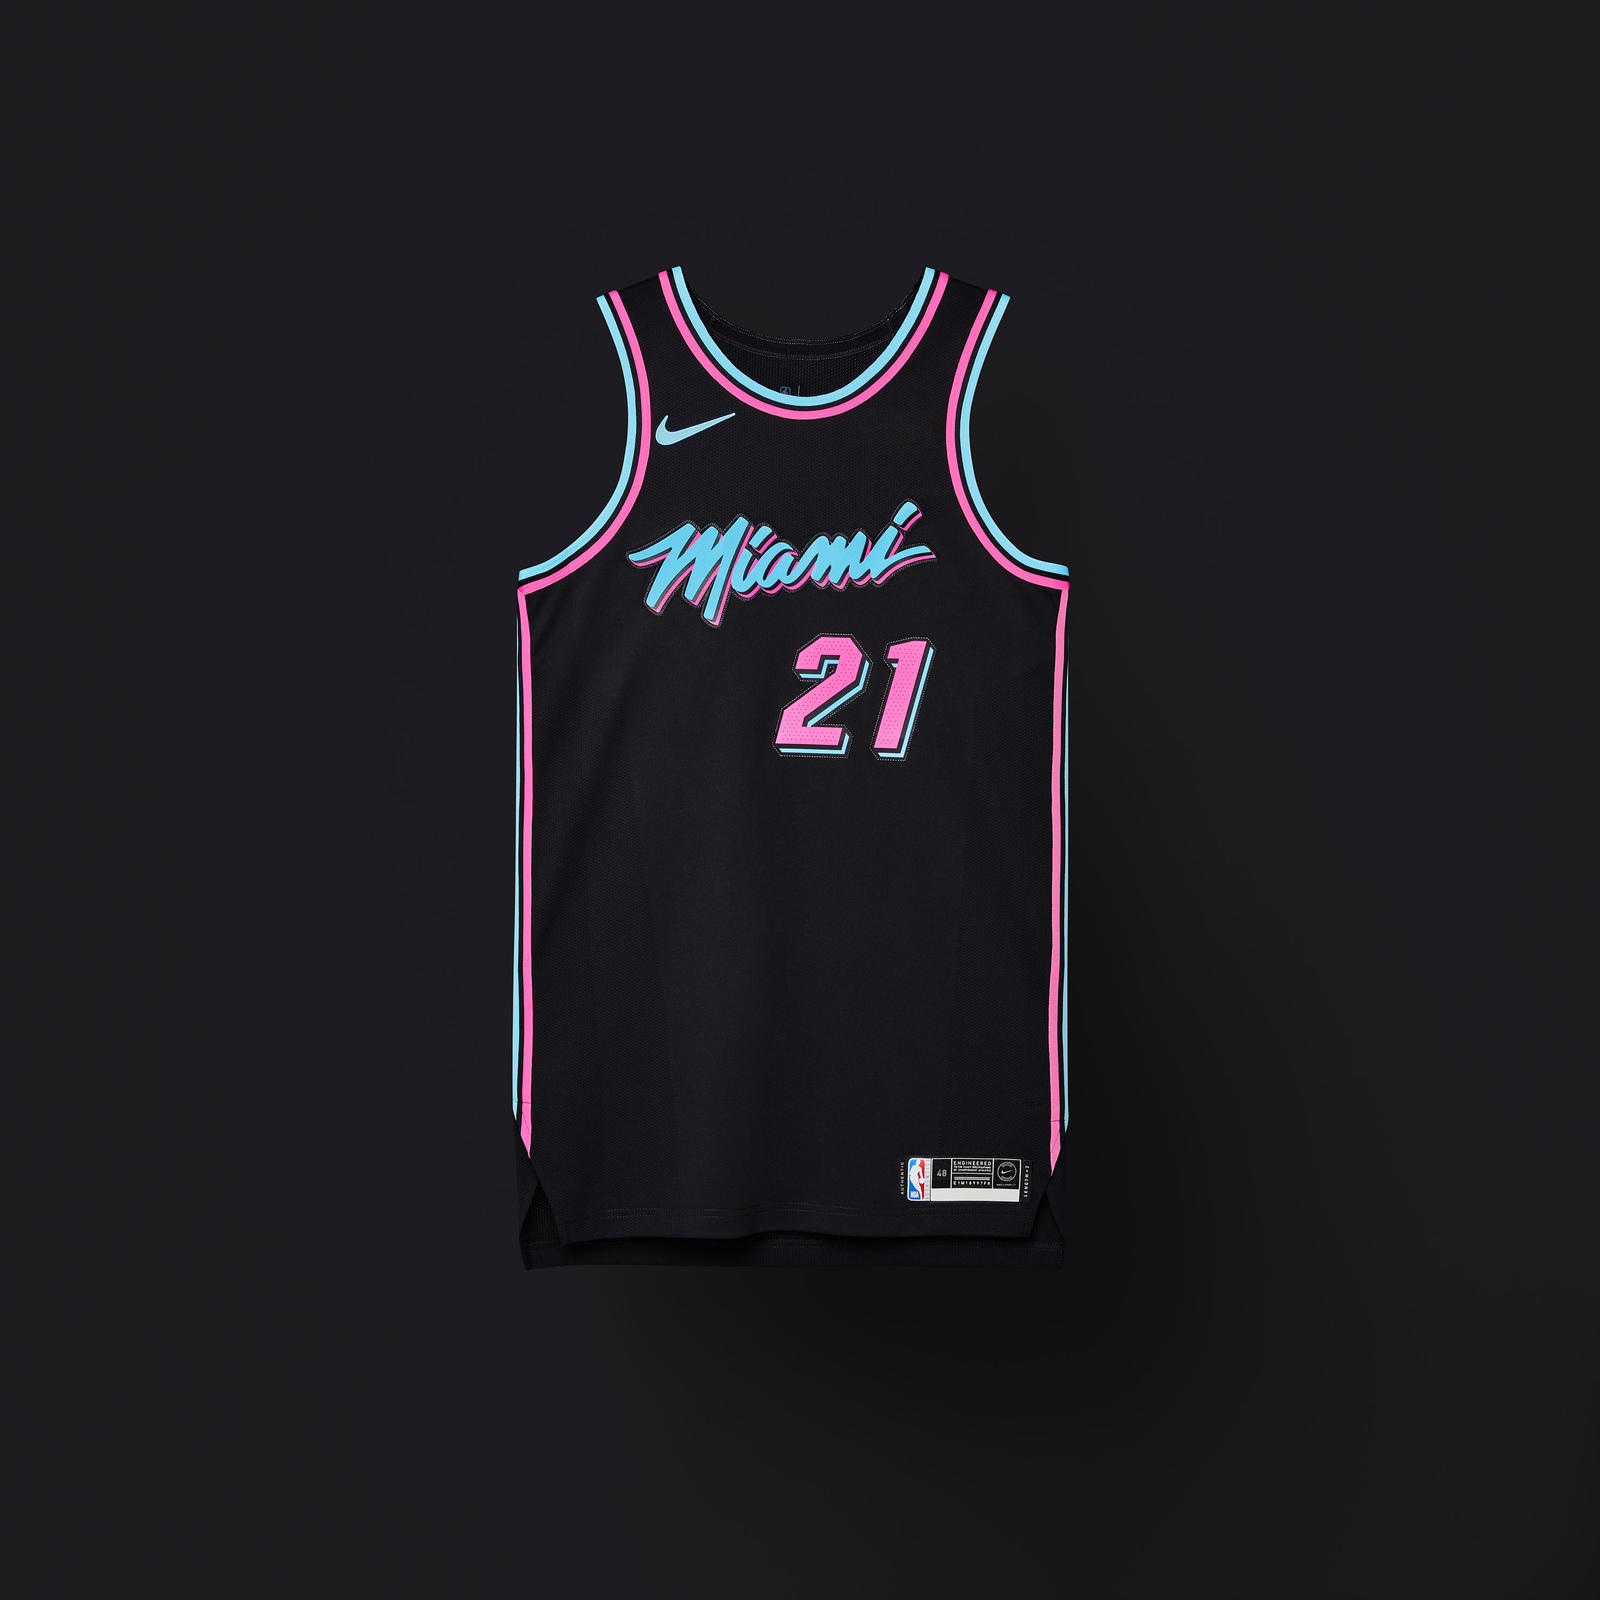 NBA City Edition Uniforms 2018-19 - Nike News b3c693a38